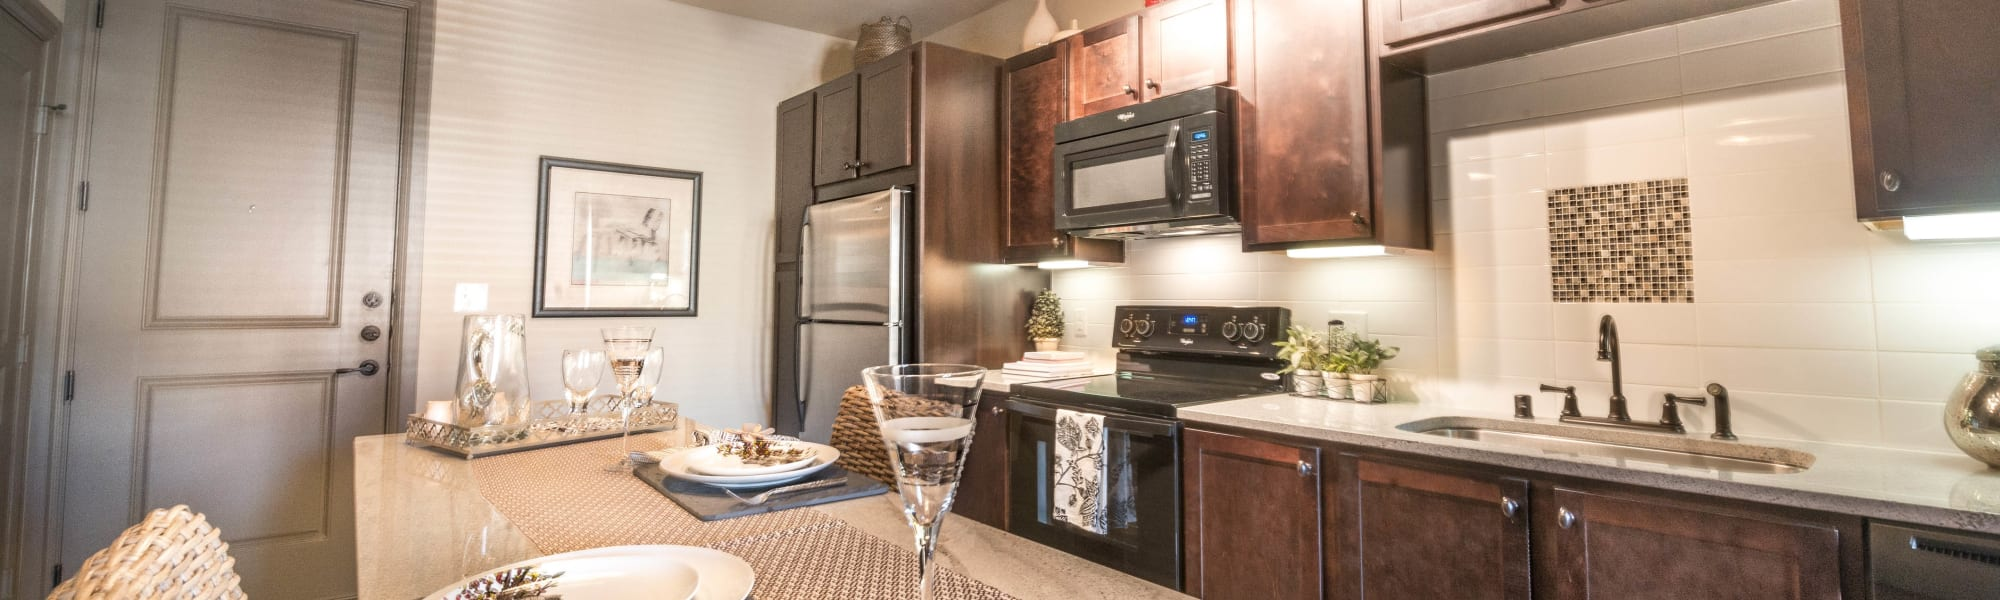 Floor plans at Union At Carrollton Square in Carrollton, Texas